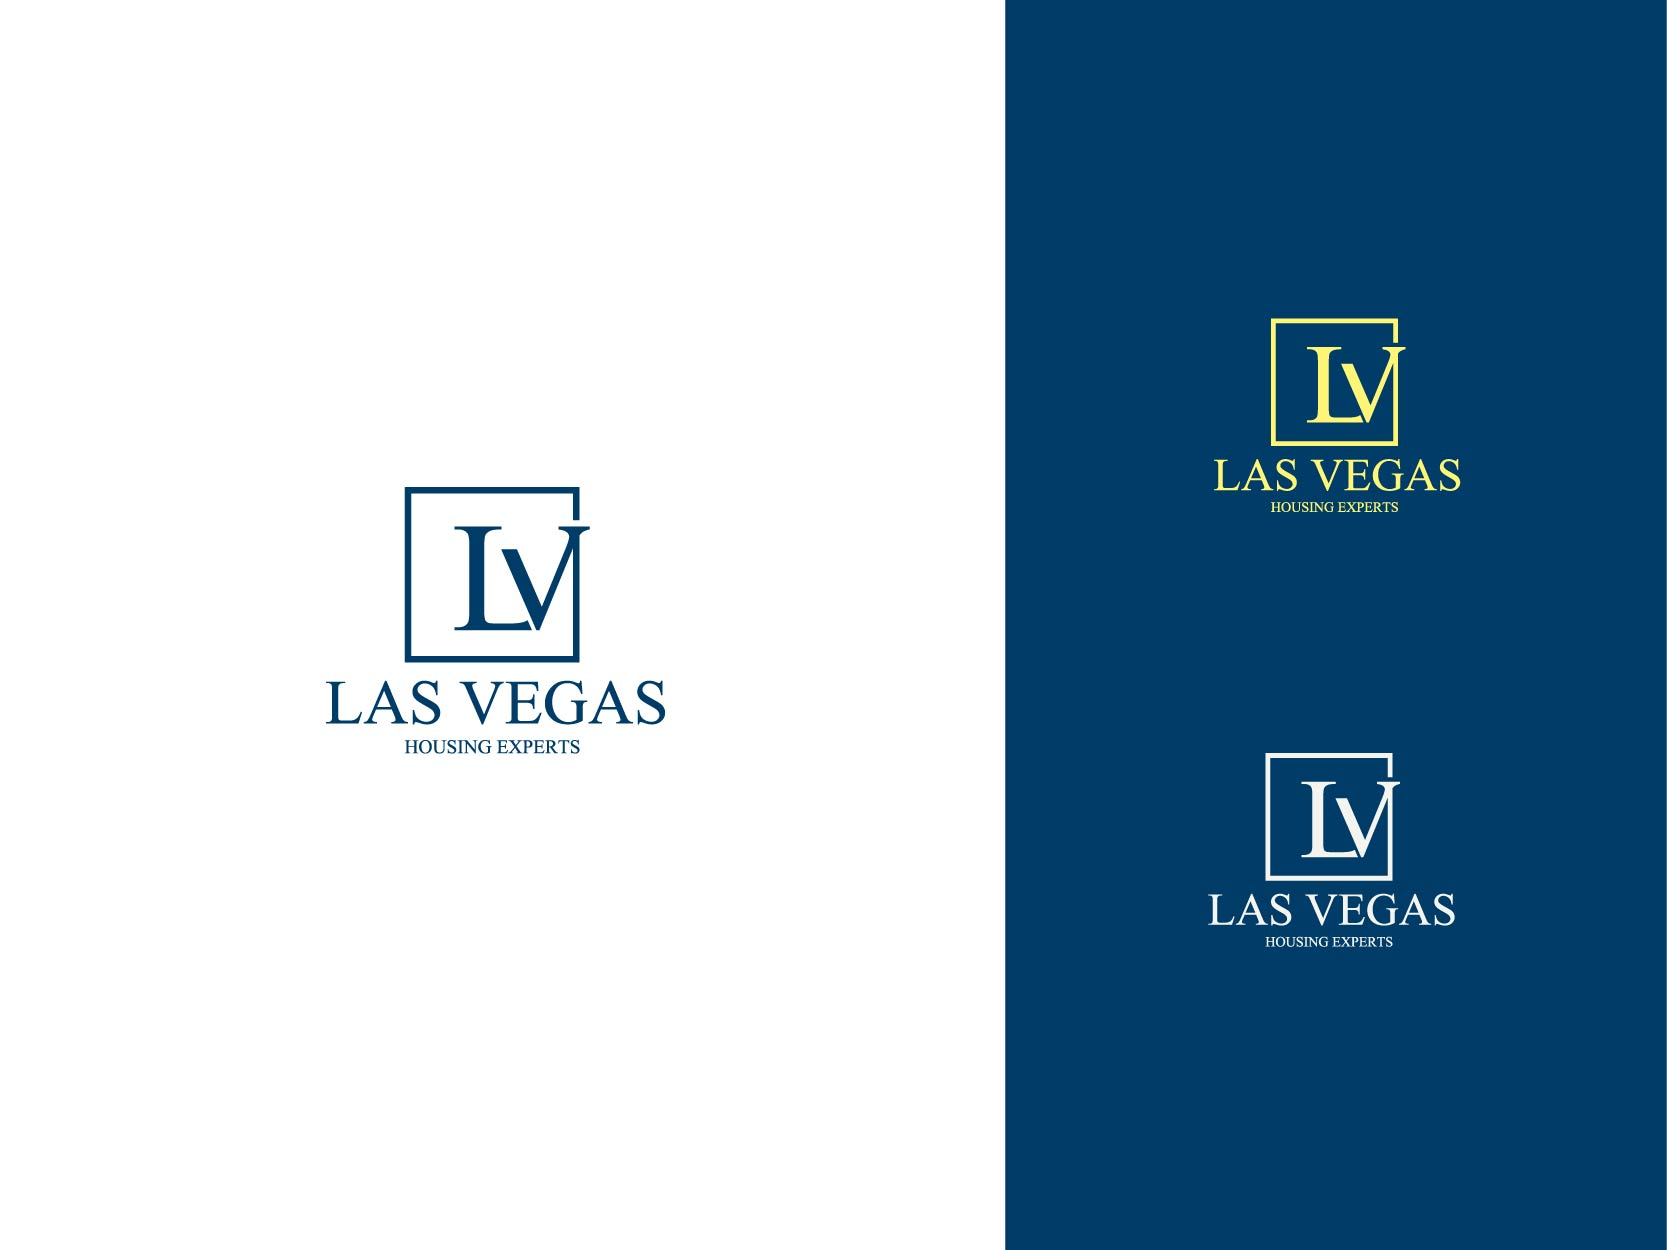 Logo Design by Osi Indra - Entry No. 22 in the Logo Design Contest Las Vegas Housing Experts Logo Design.